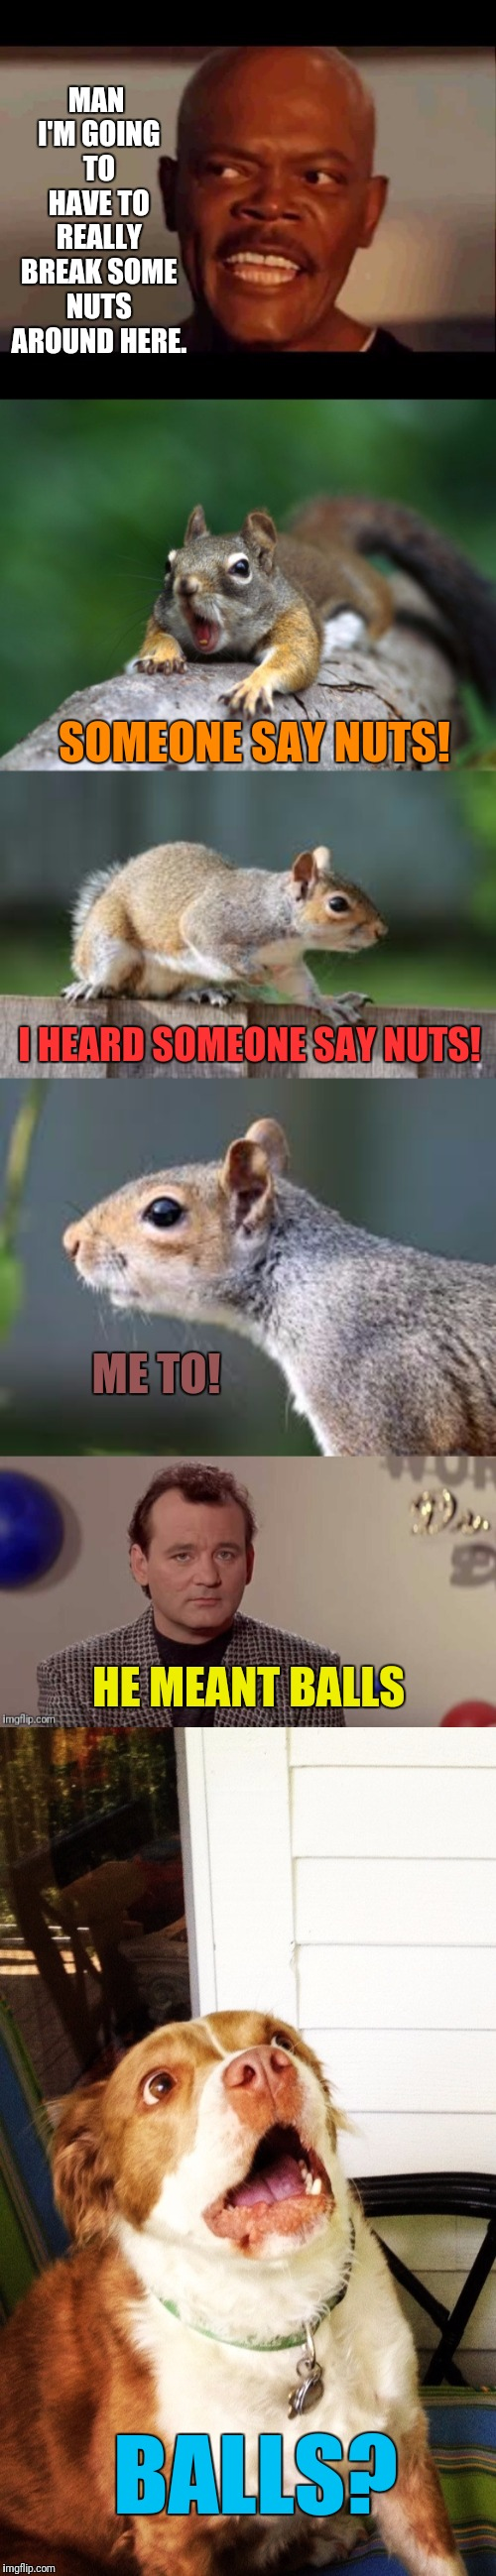 Misunderstandings Abound | MAN I'M GOING TO HAVE TO REALLY BREAK SOME NUTS AROUND HERE. I HEARD SOMEONE SAY NUTS! SOMEONE SAY NUTS! ME TO! HE MEANT BALLS BALLS? | image tagged in bill murray,samuel l jackson,squirrels,what do we want,nuts | made w/ Imgflip meme maker